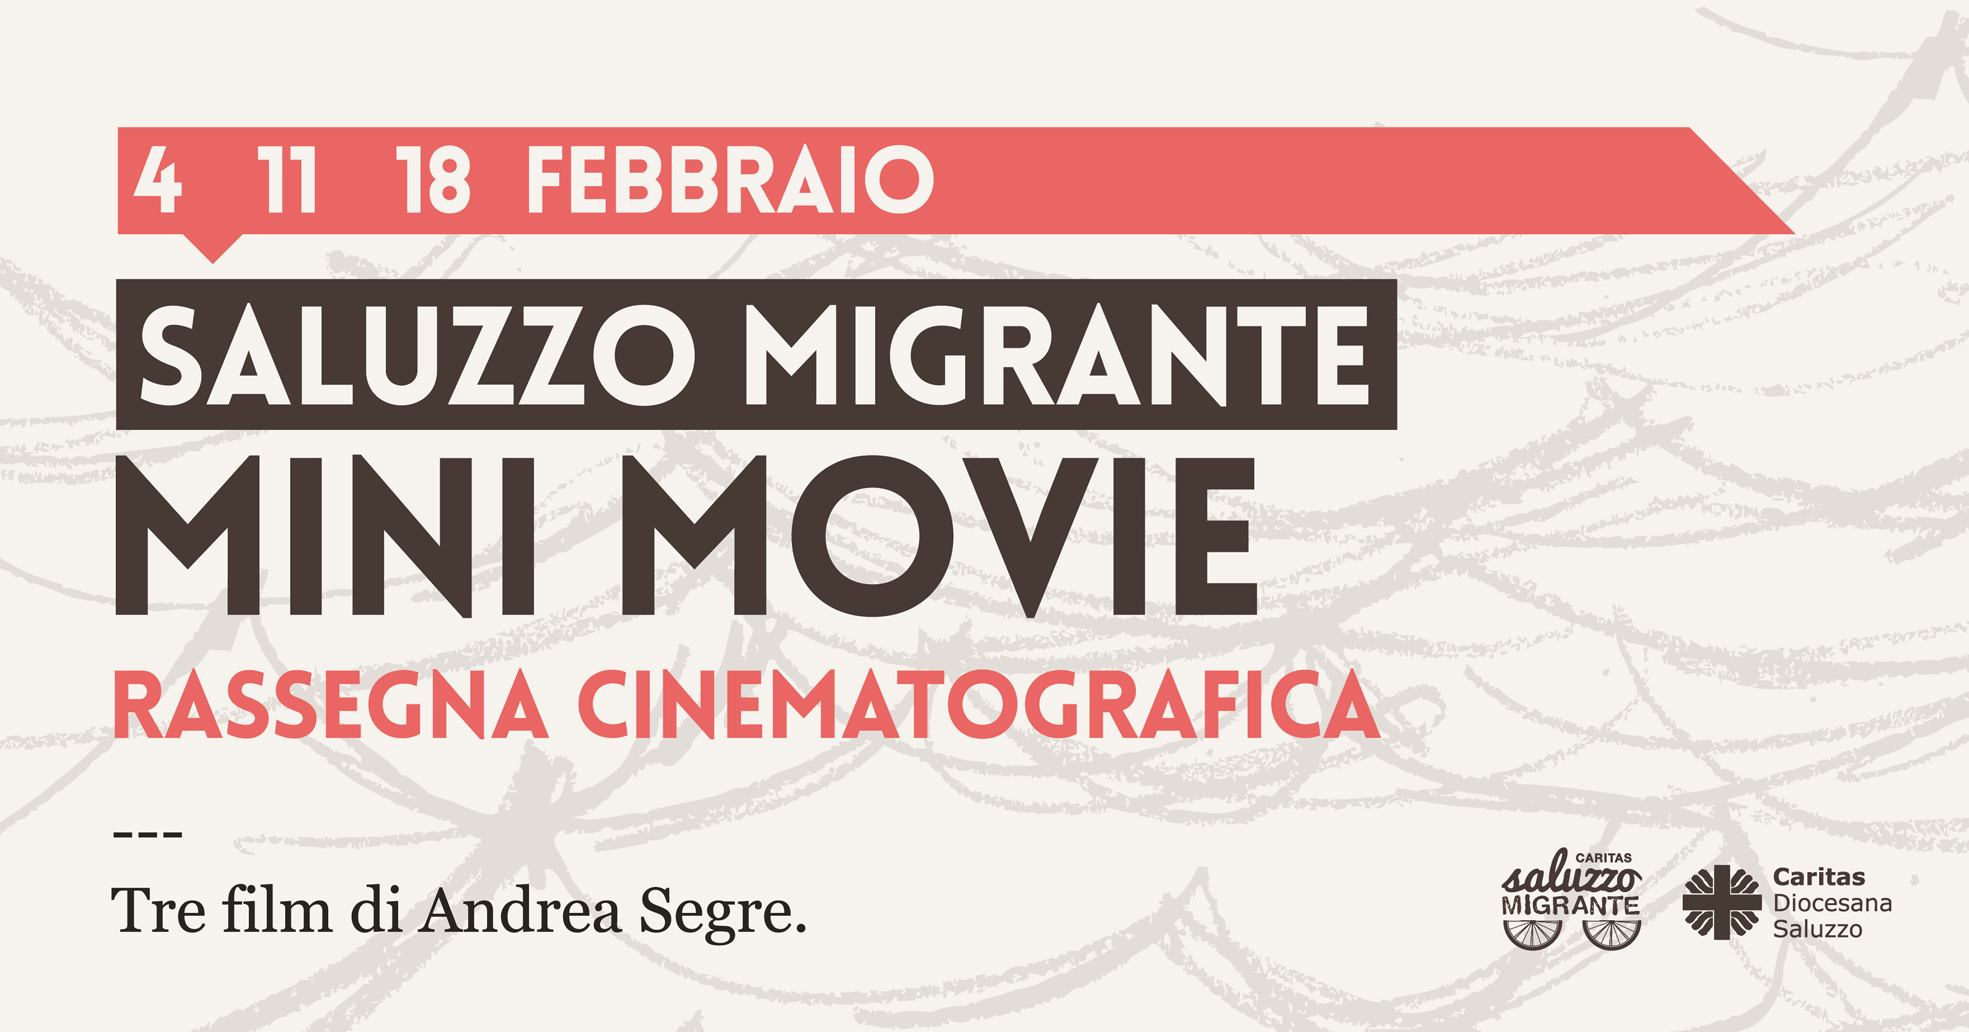 saluzzo migrante mini movie cinema